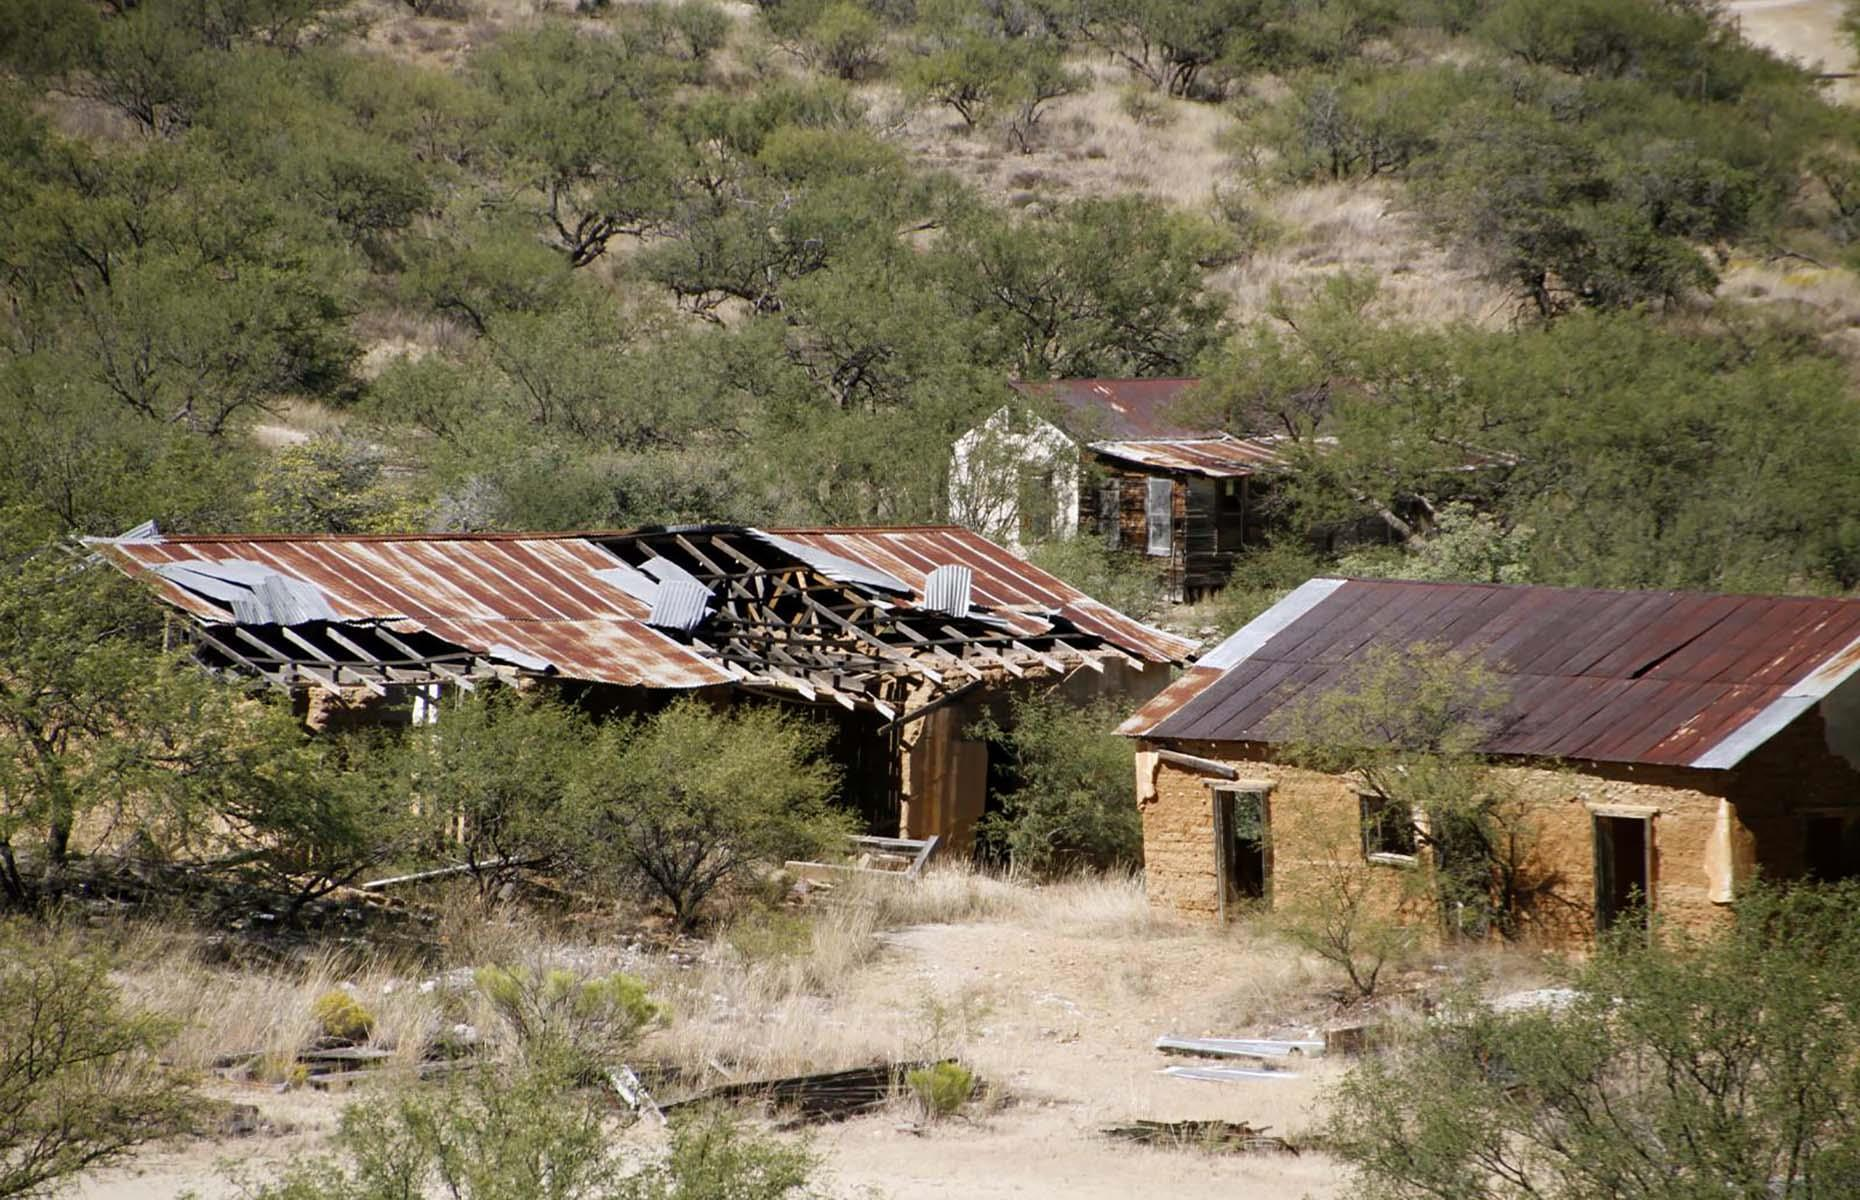 Slide 35 of 46: Four miles (6.5km) north of the Mexican border deep in the south of Arizona lies Ruby, surrounded by the Coronado National Forest in an area of rugged mountains, semi-arid deserts and abundant wildlife. Once the largest mining camp in the region, now wild vegetation has invaded most of the buildings, making for an eerie site.